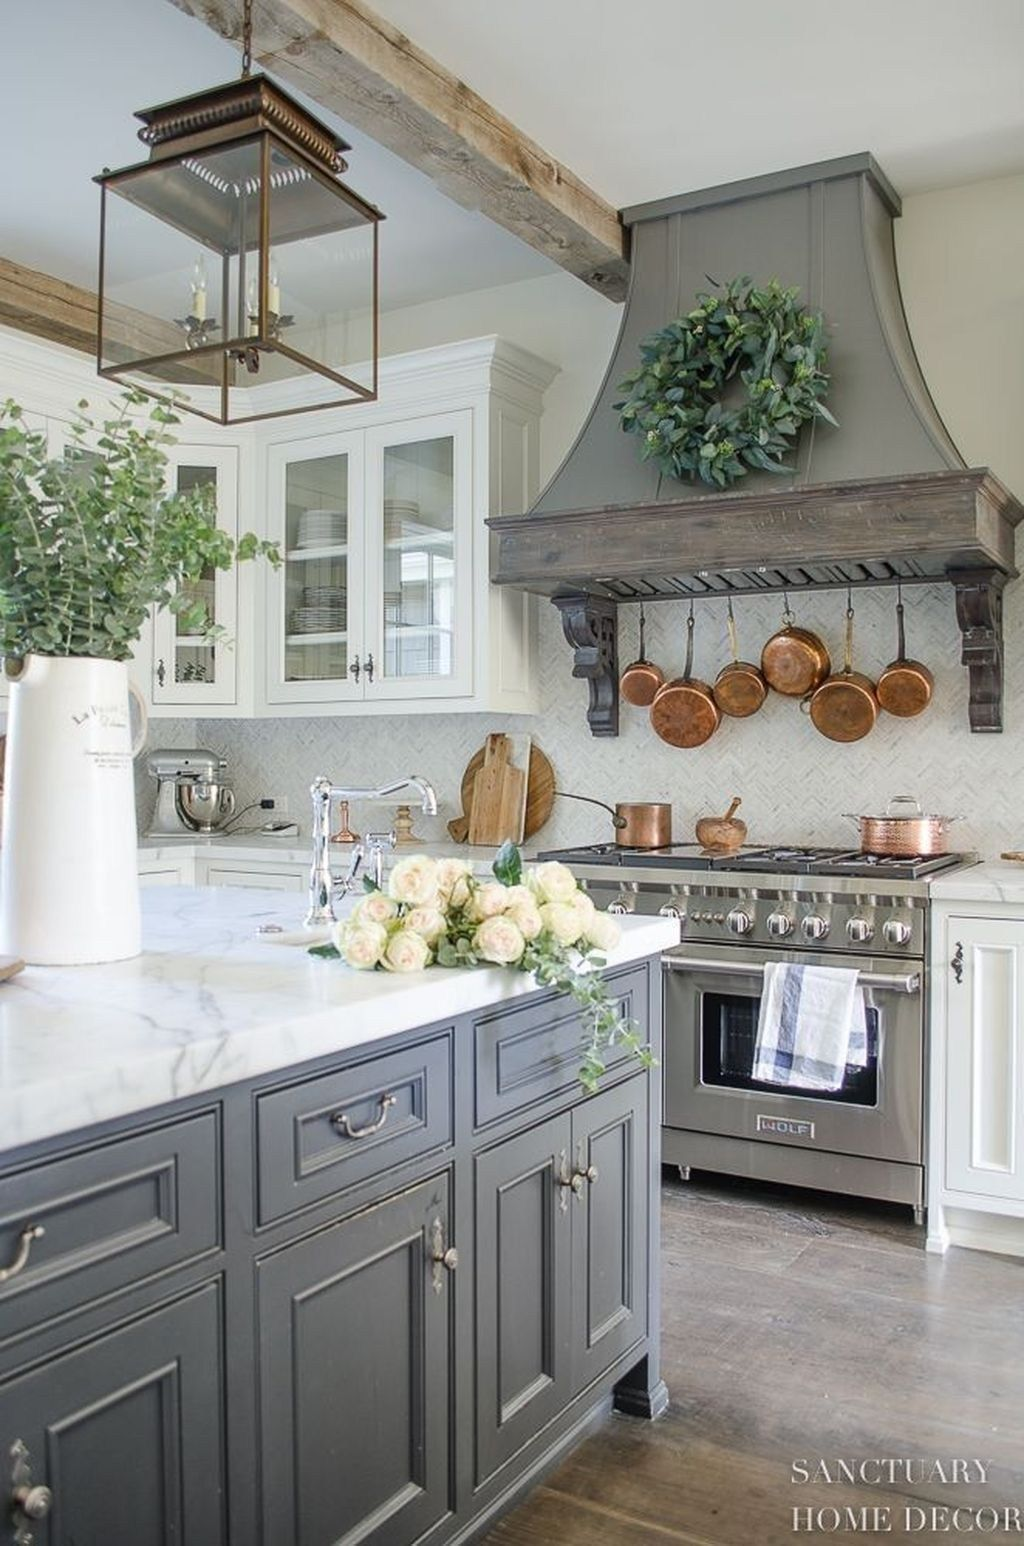 31 amazing white kitchen ideas with farmhouse style country kitchen designs french country on kitchen interior french country id=38911